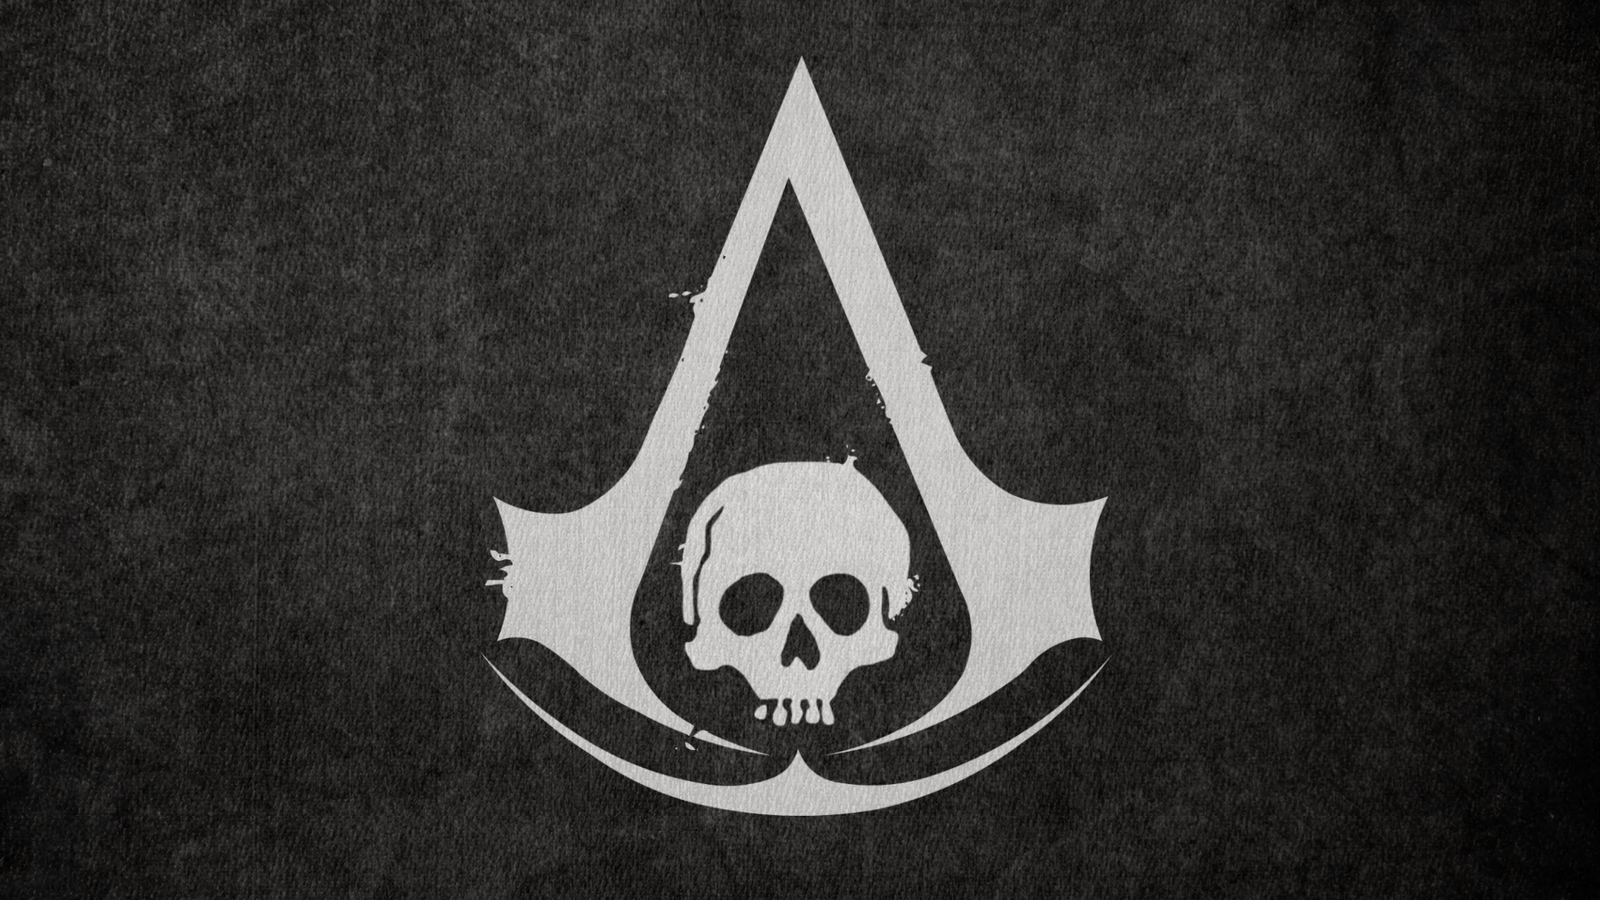 Assassins creed iv black flag wallpaper by okiir on deviantart assassins creed iv black flag wallpaper by okiir voltagebd Choice Image